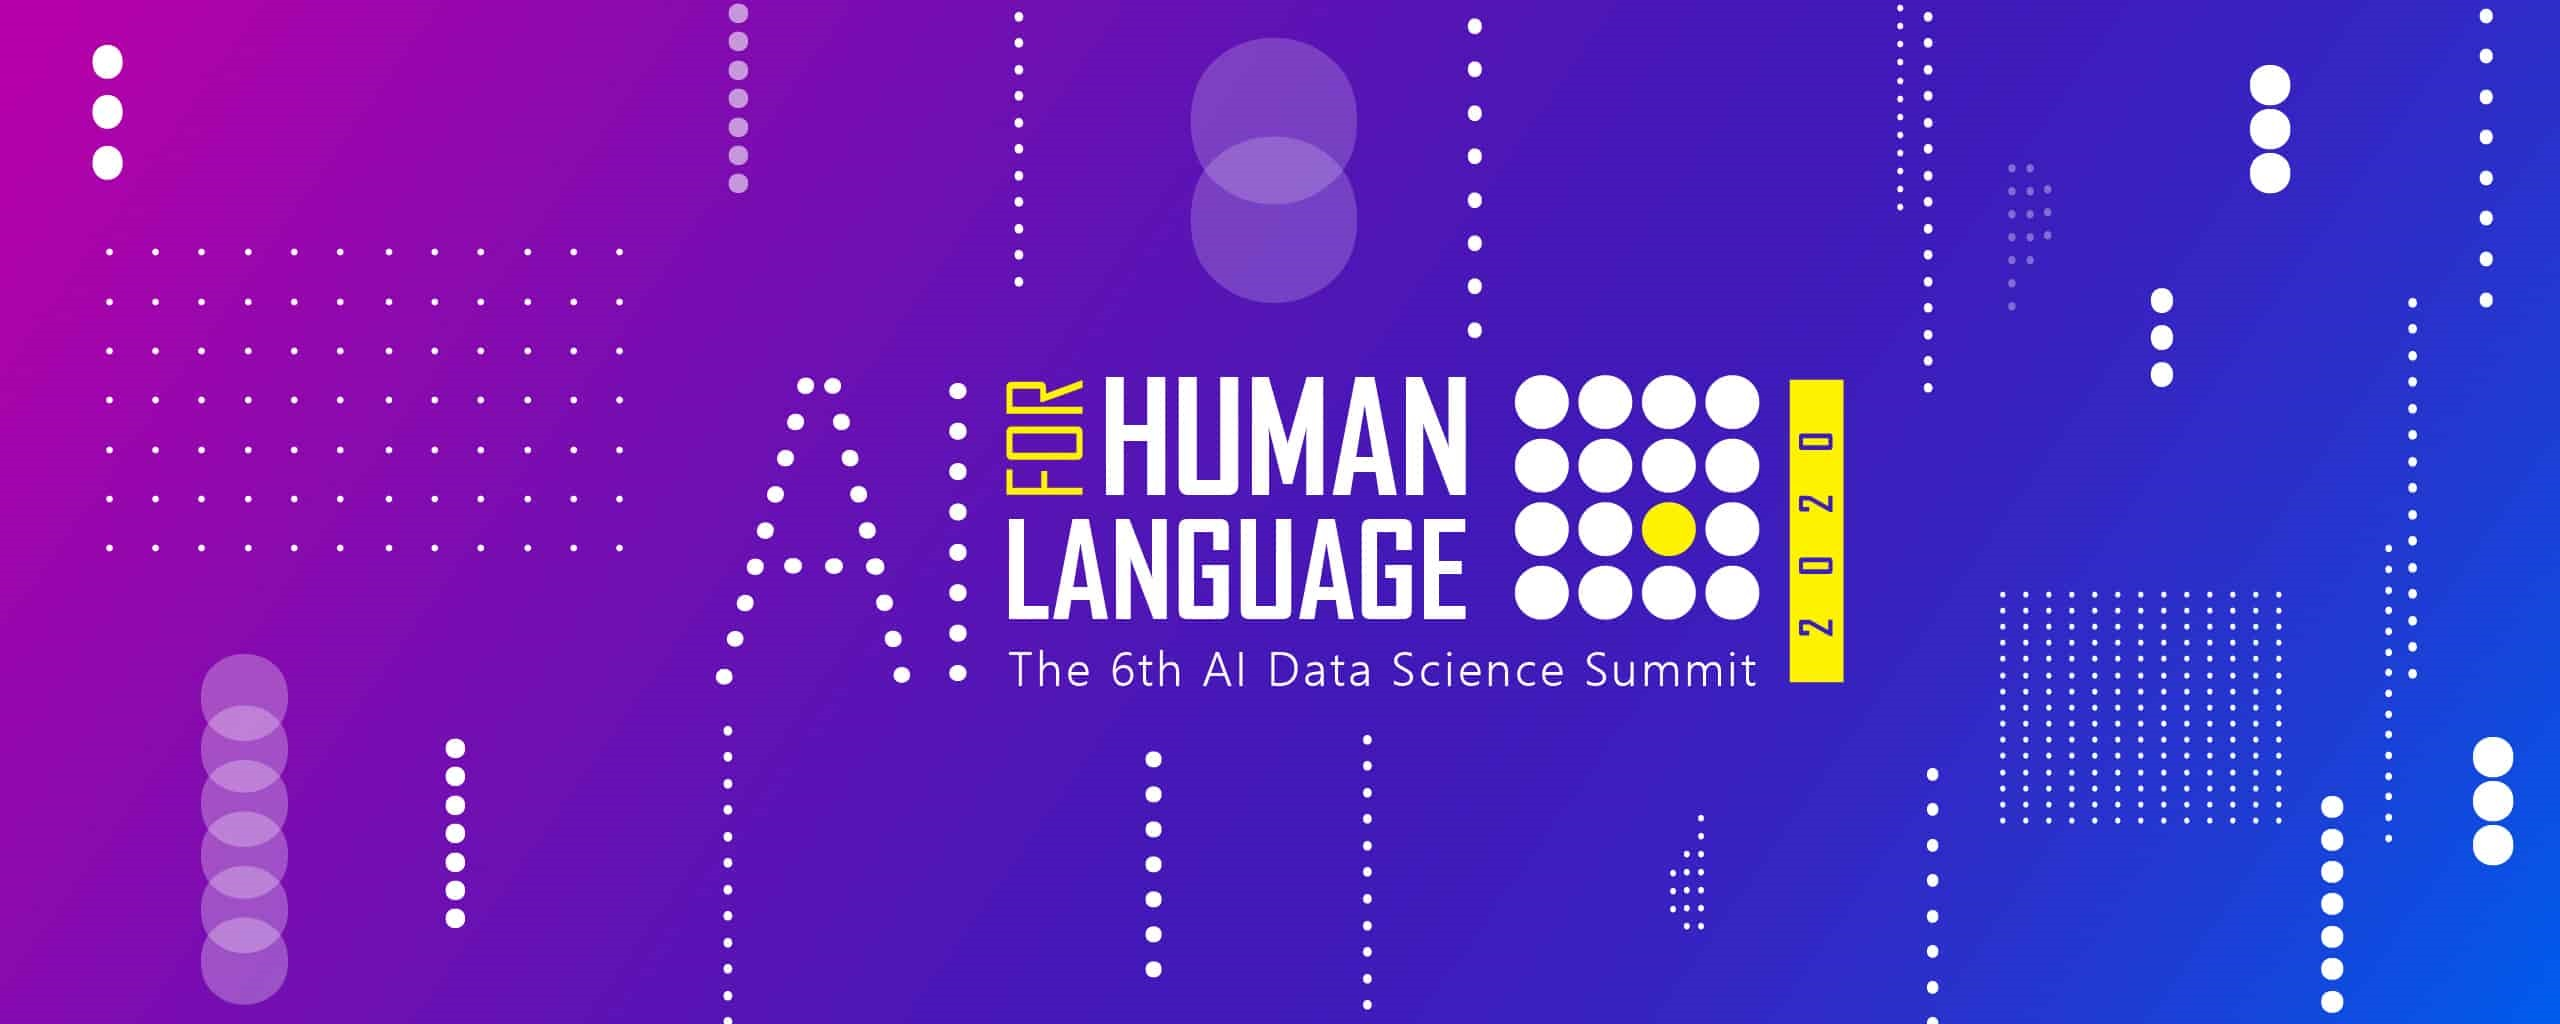 AI Data Science Summit 2020